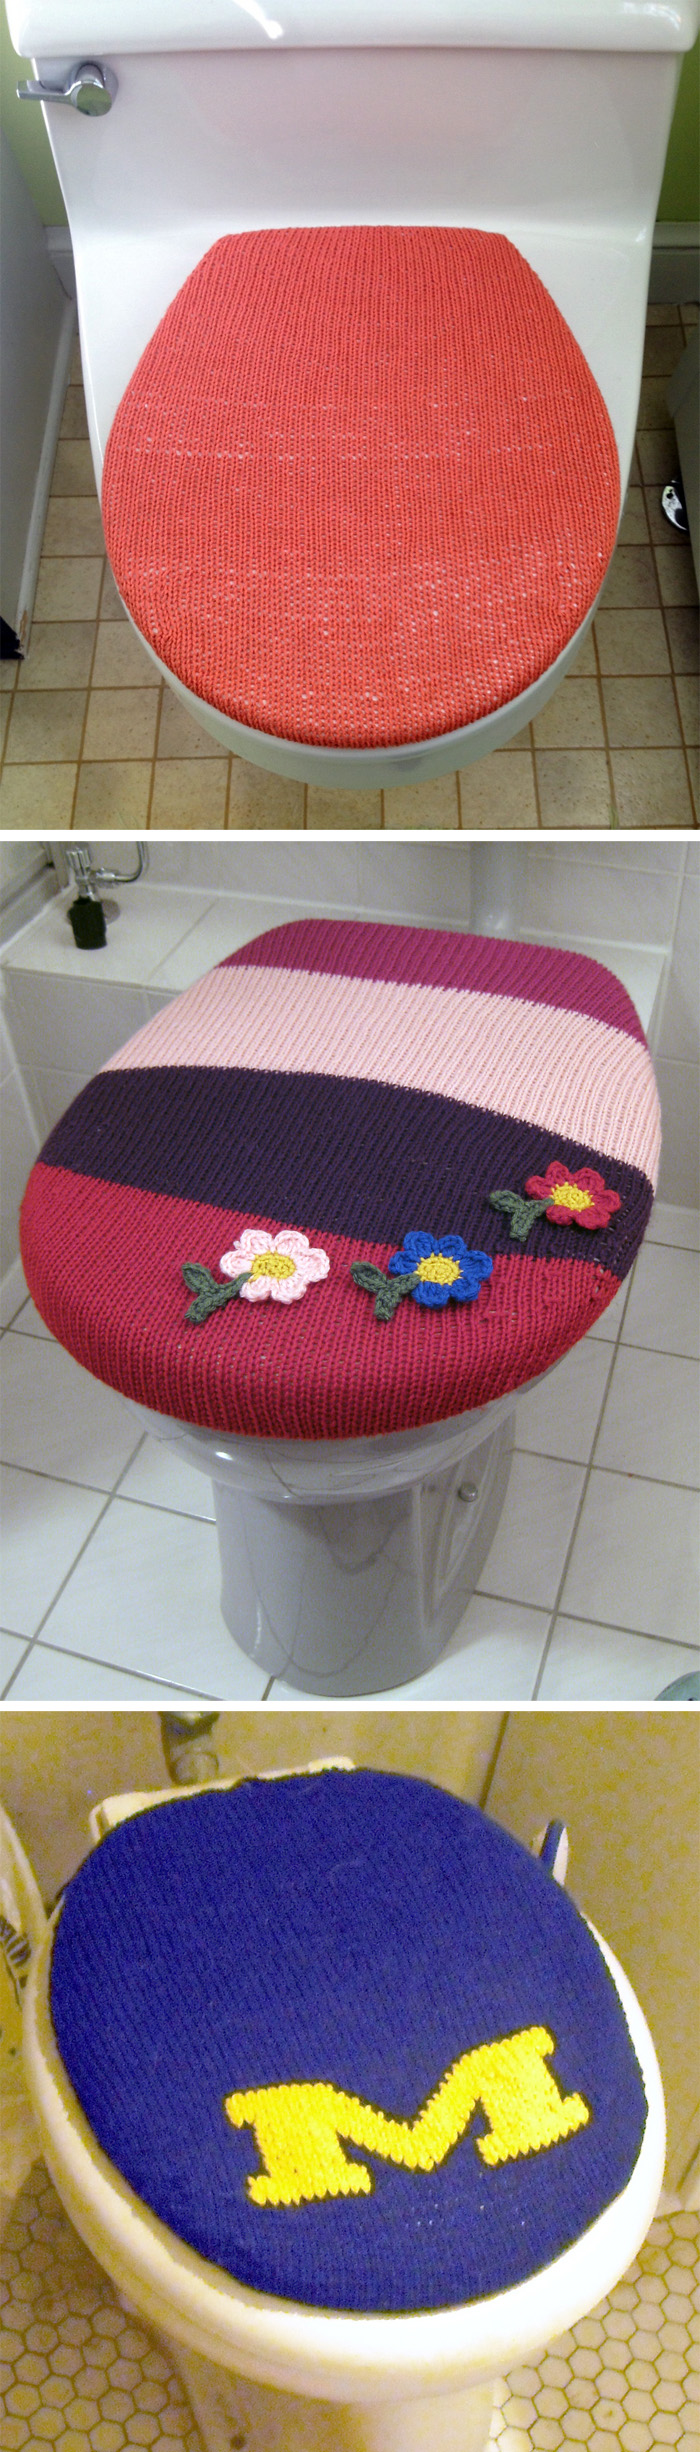 Prime Knitting Patterns For The Bath In The Loop Knitting Spiritservingveterans Wood Chair Design Ideas Spiritservingveteransorg